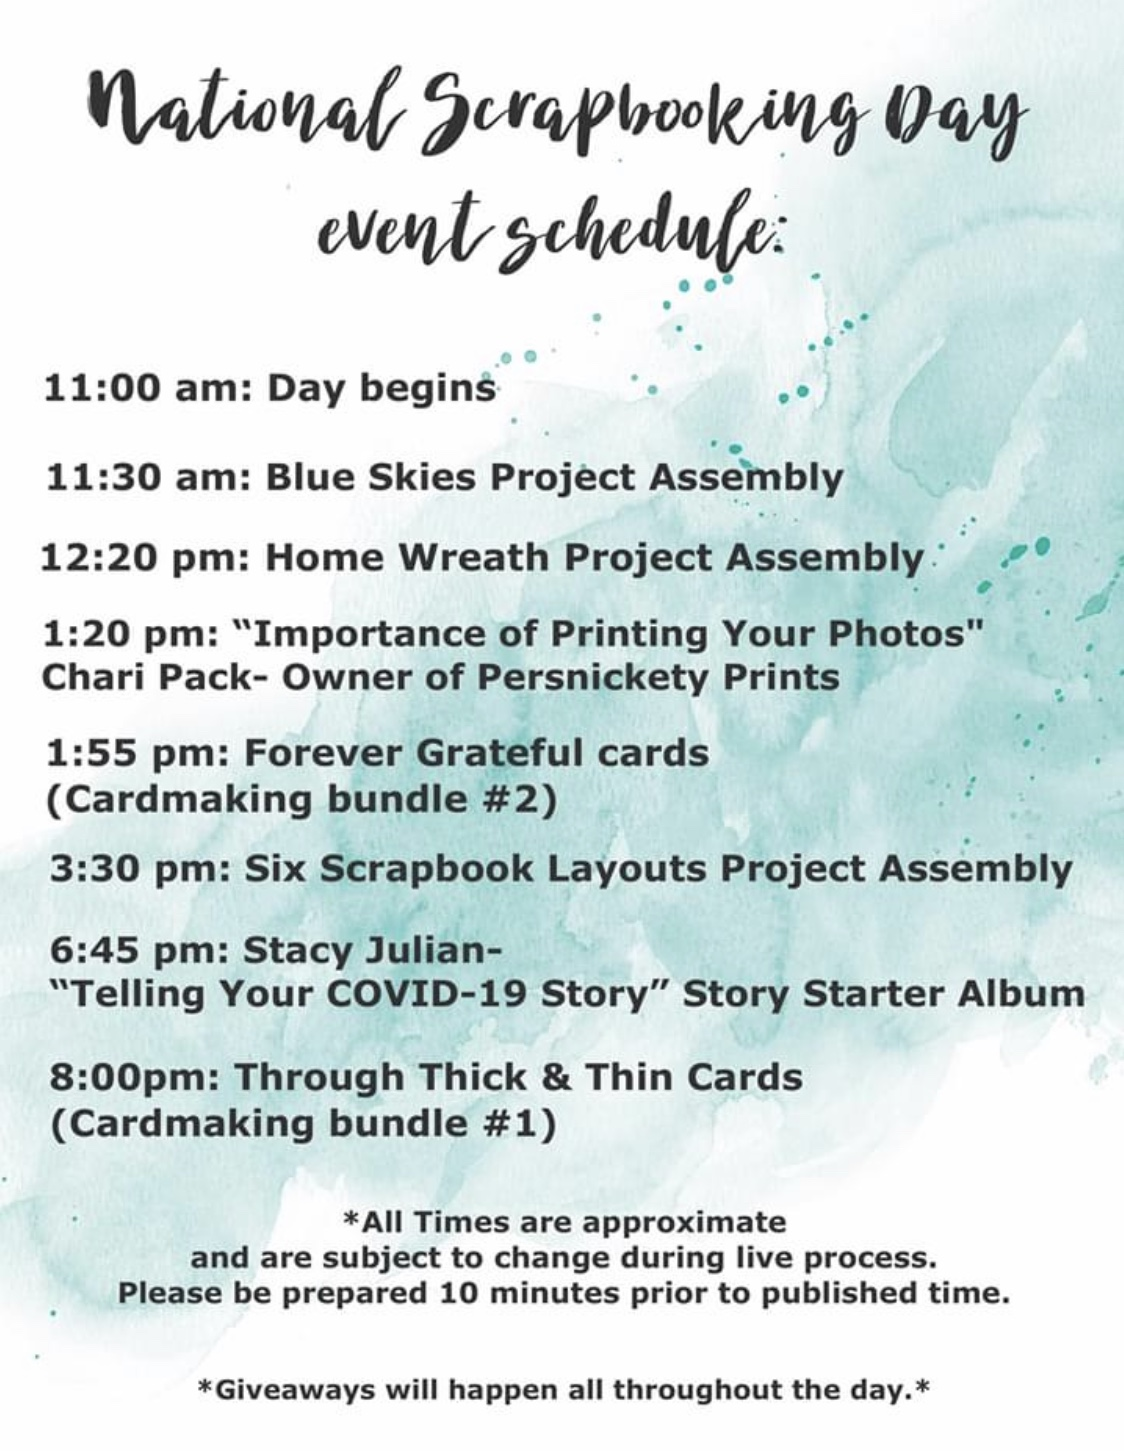 CTMH National Scrapbooking Day Schedule